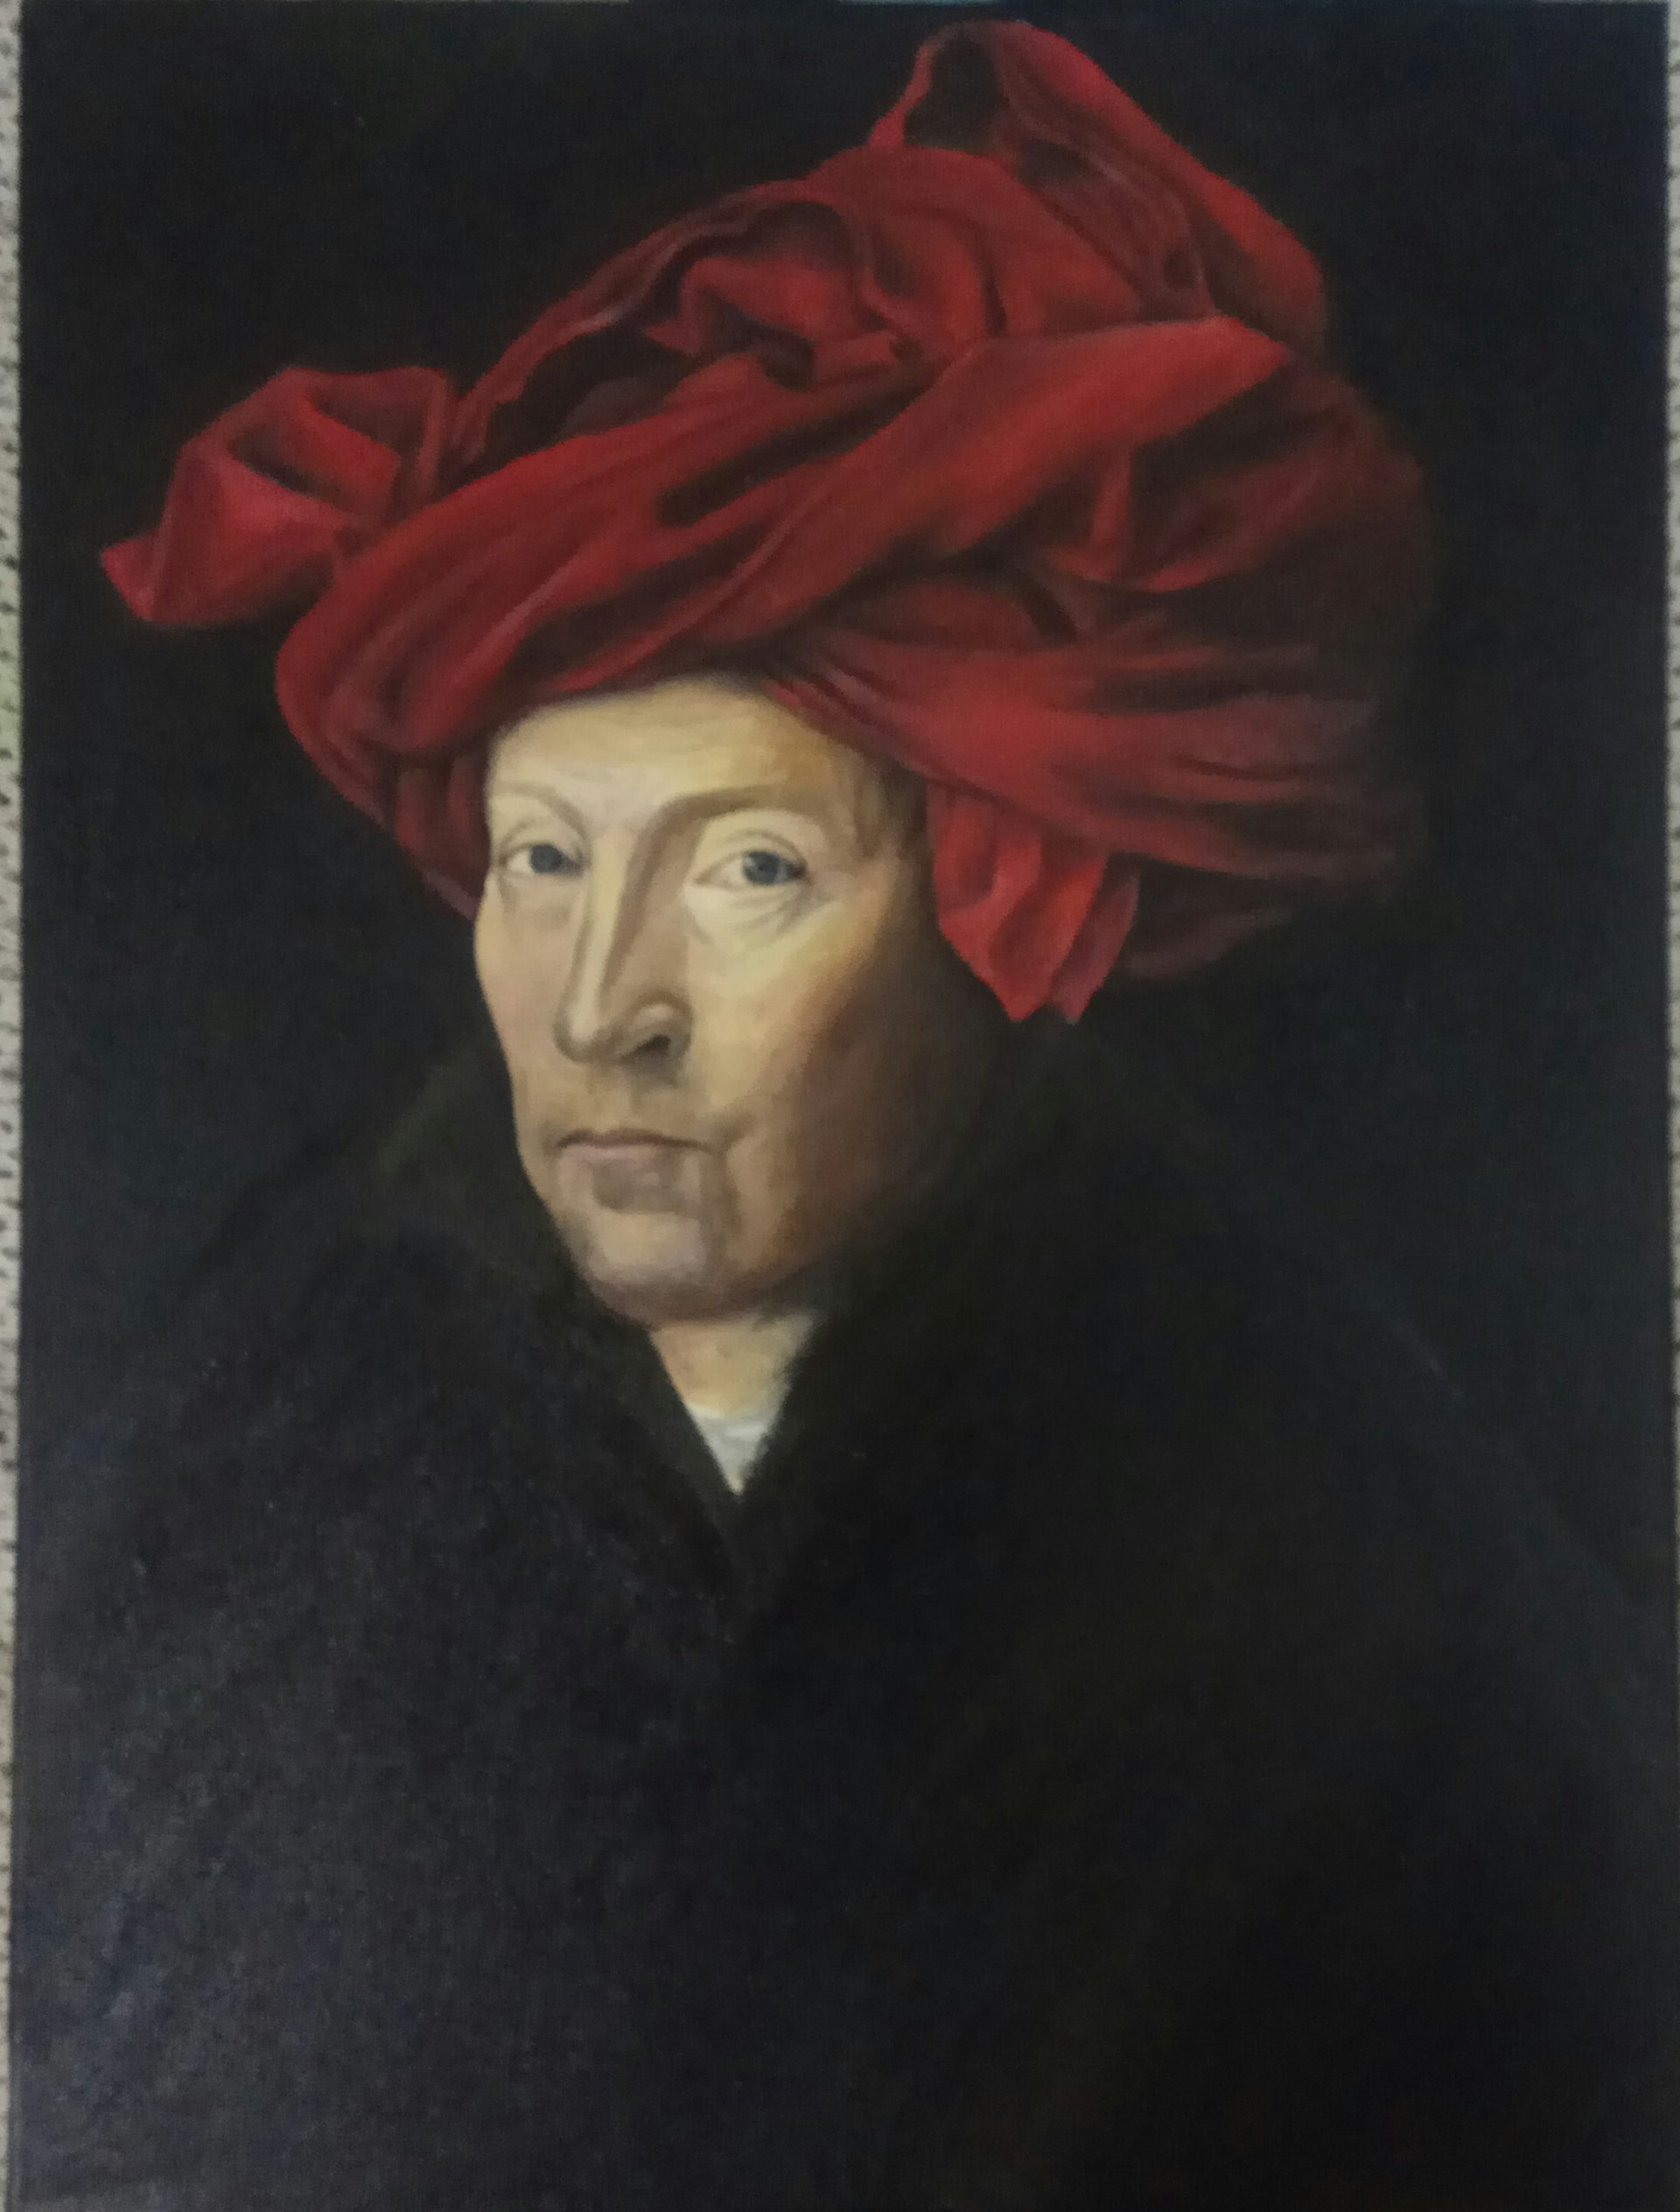 A copy of a painting by Jan van Eyck, Portrait of a Man in Red Turban